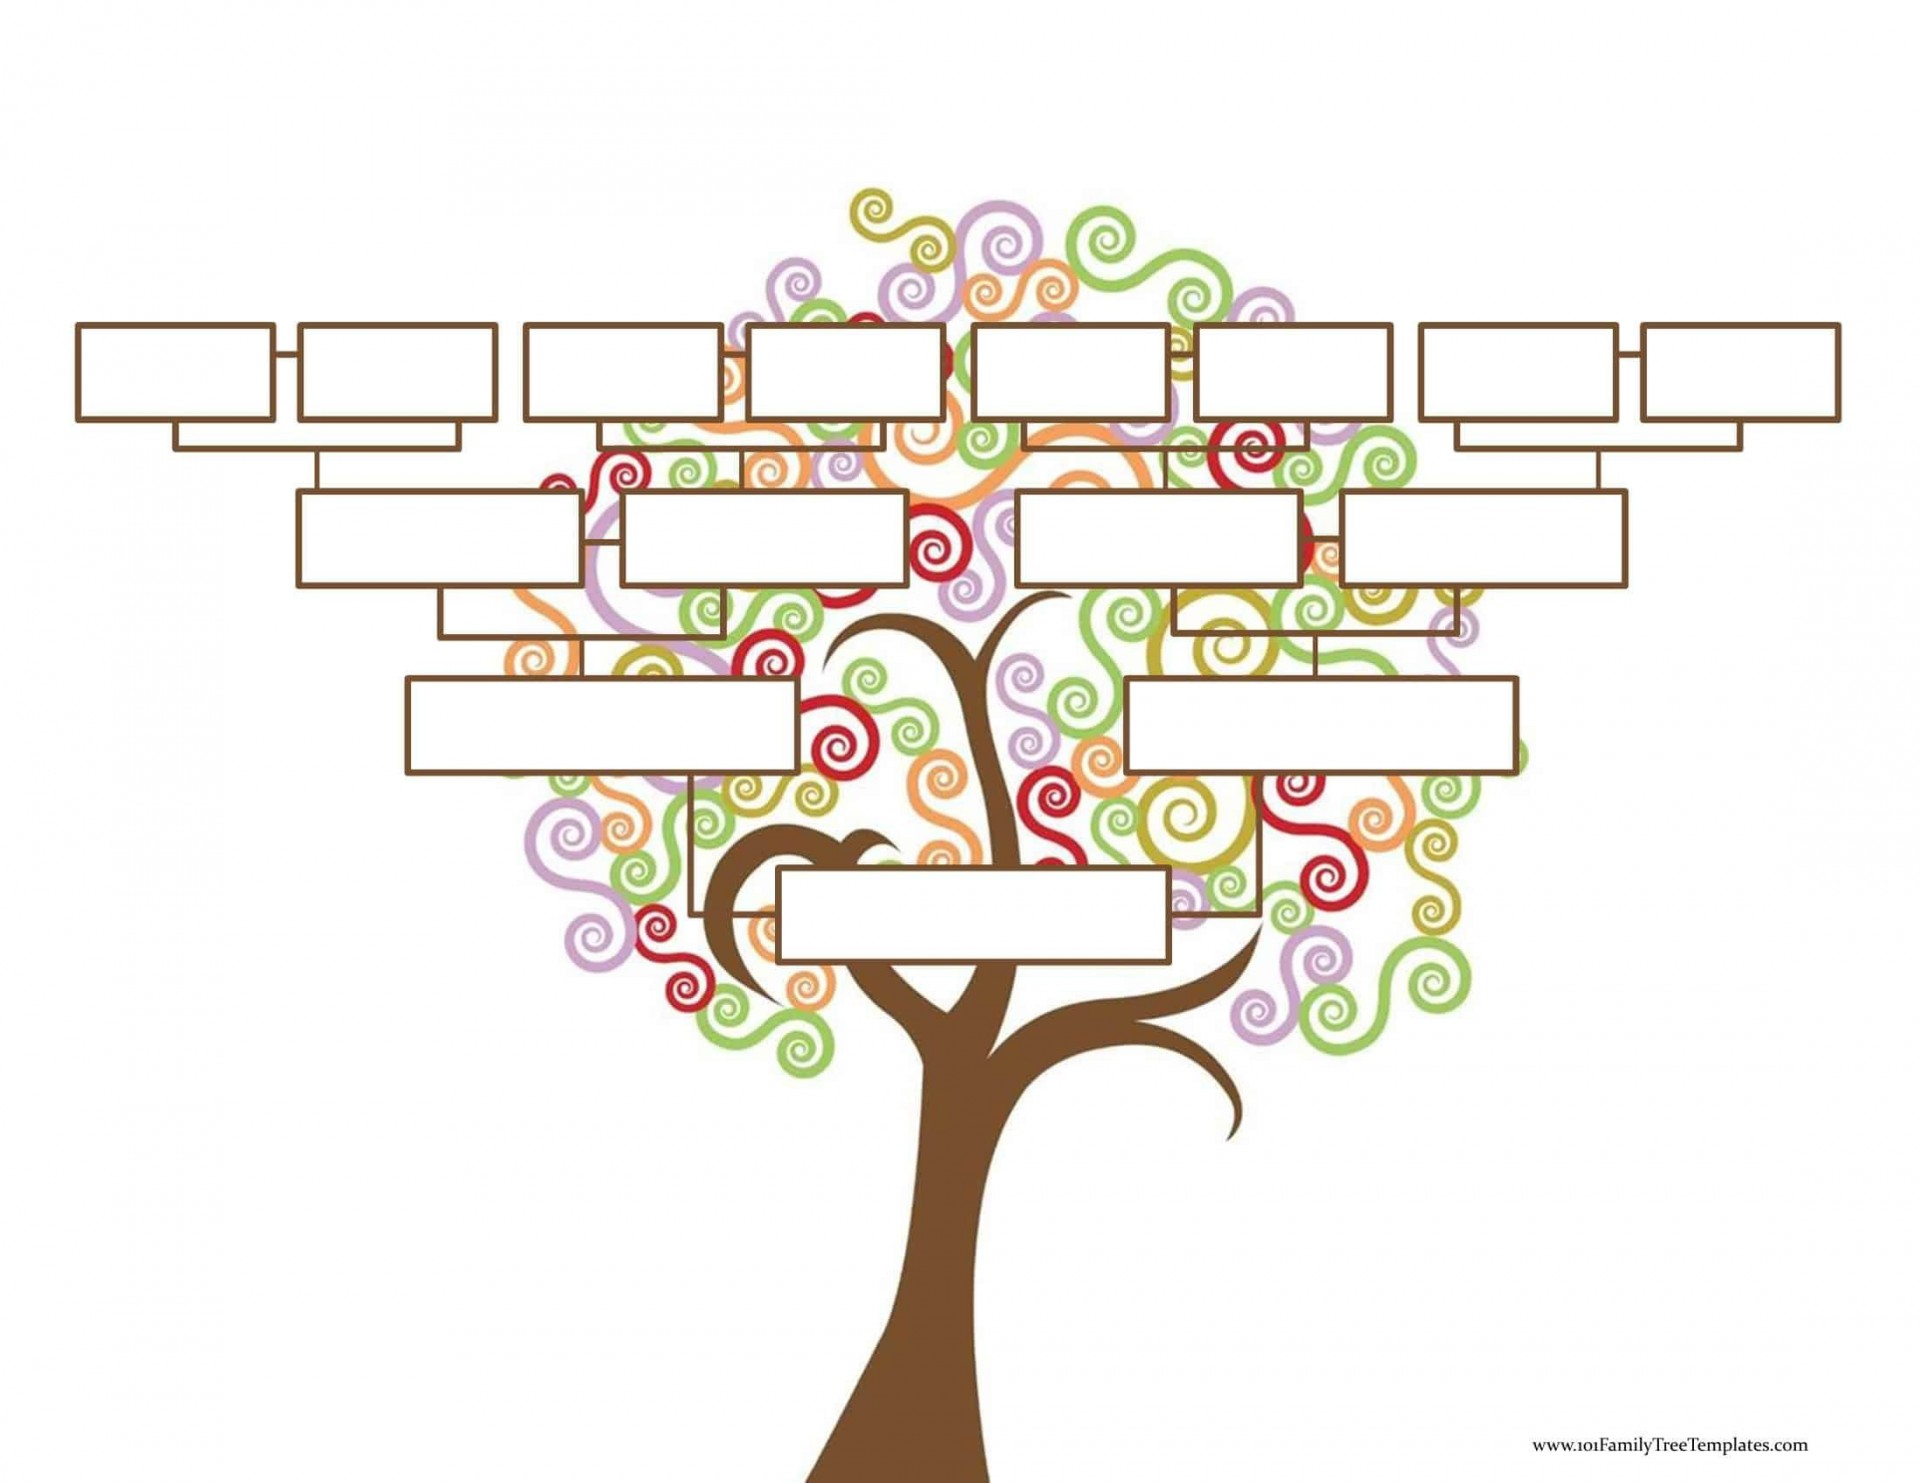 010 Shocking Editable Family Tree Template Online Free High Resolution 1920